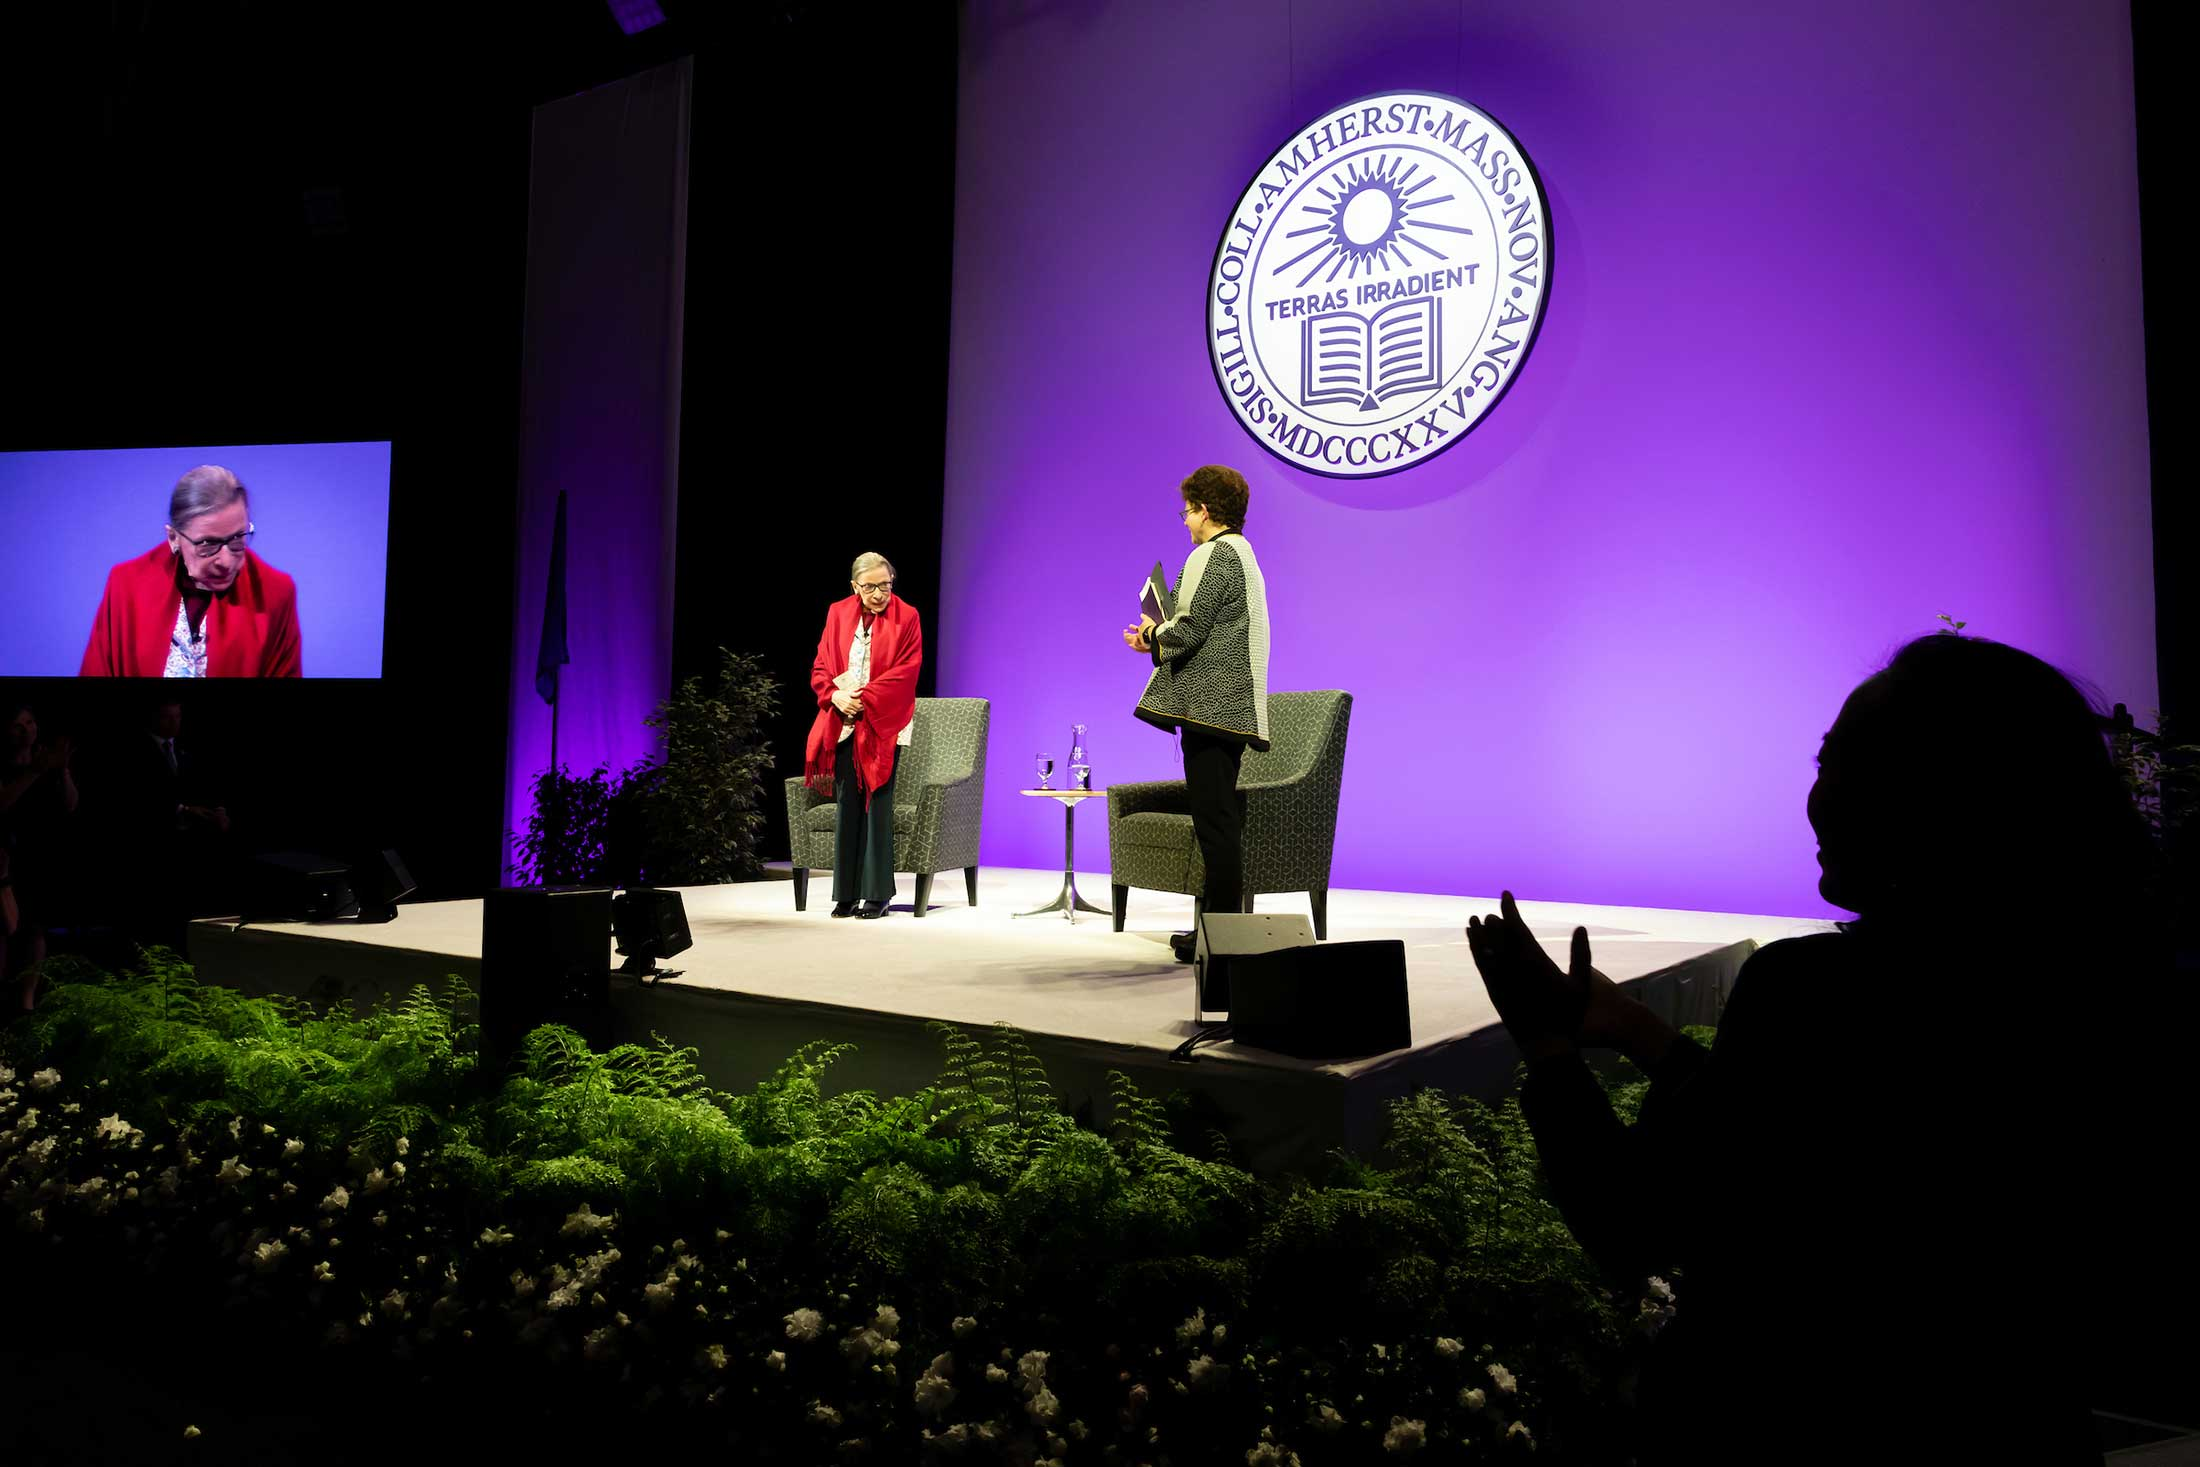 Justice Ginsburg and President Biddy Martin standing on stage side by side